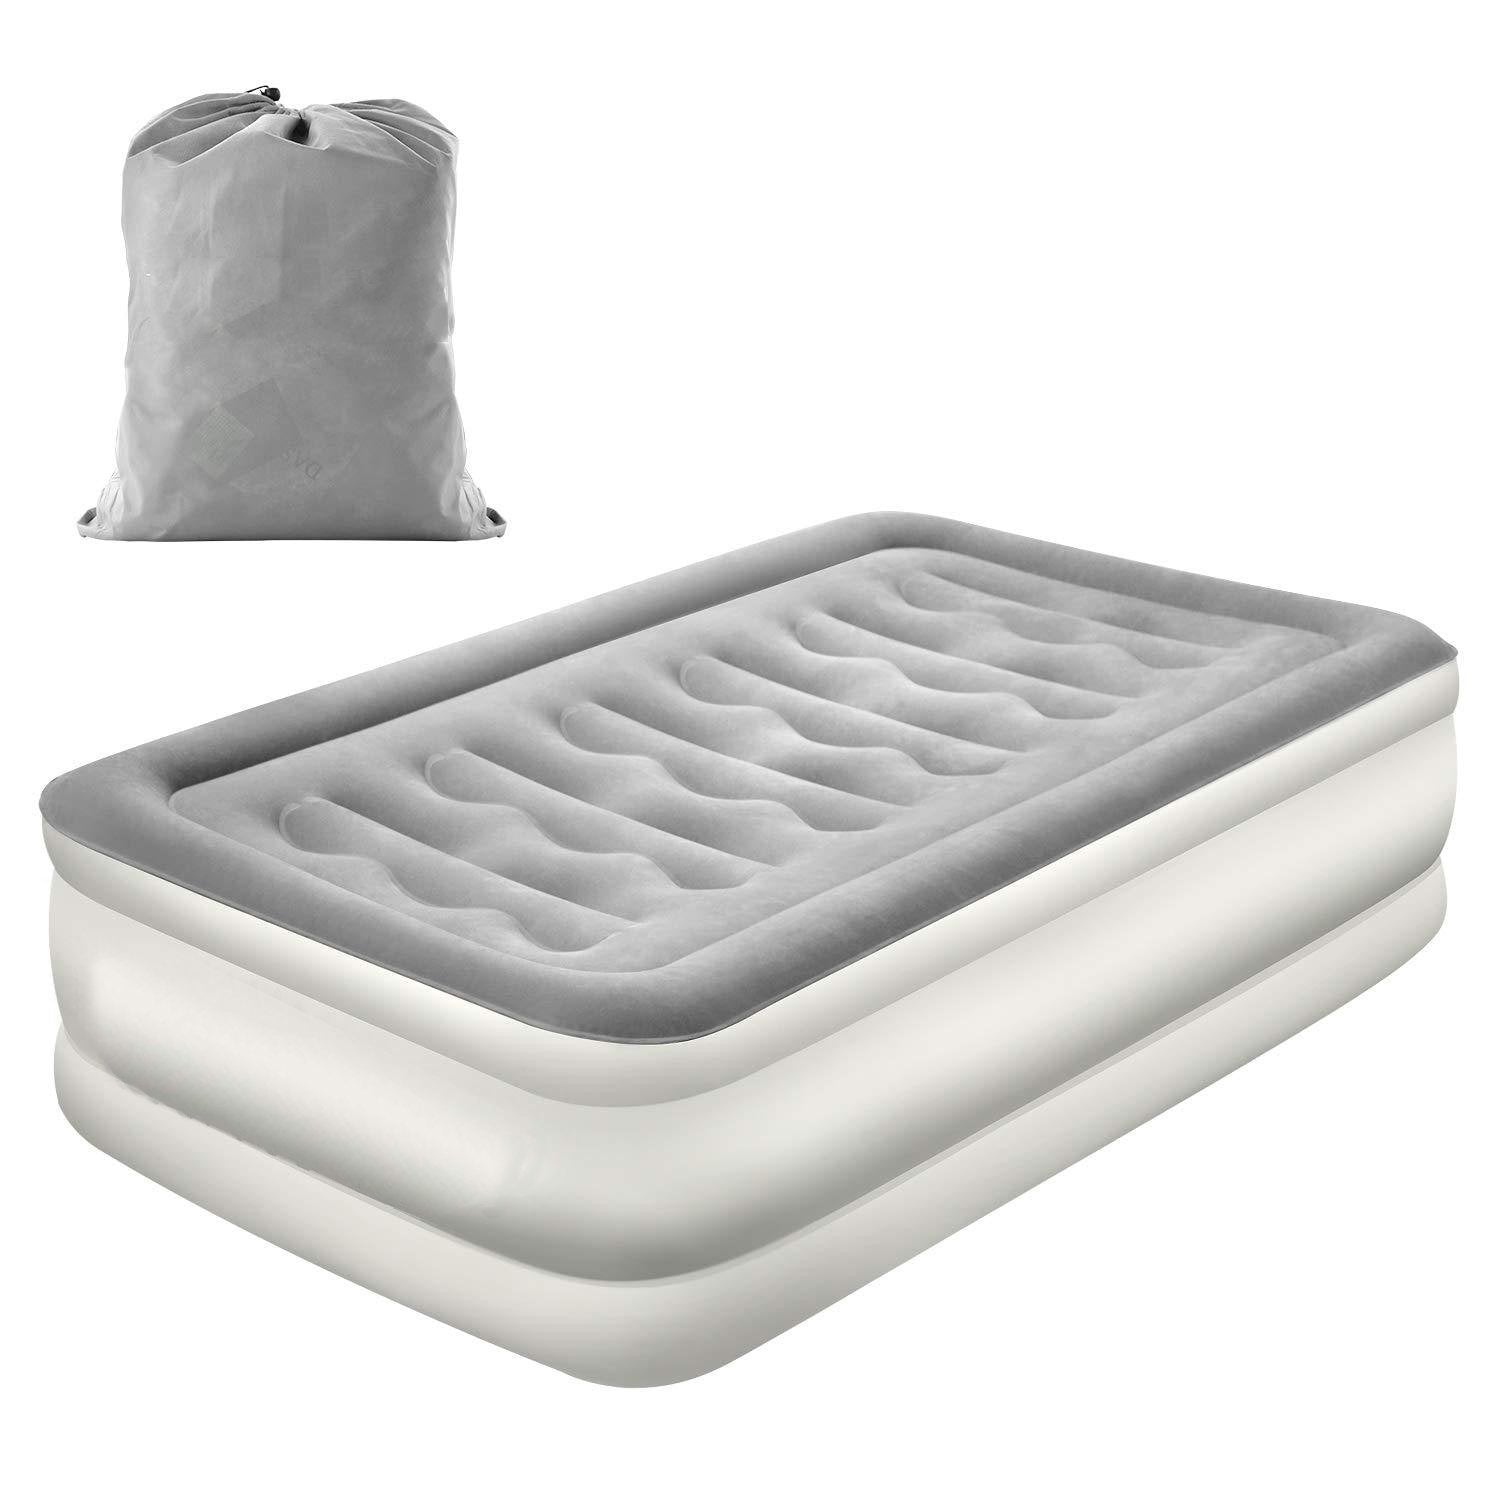 Air Mattress with Built-in Electric Pump and Storage Bag